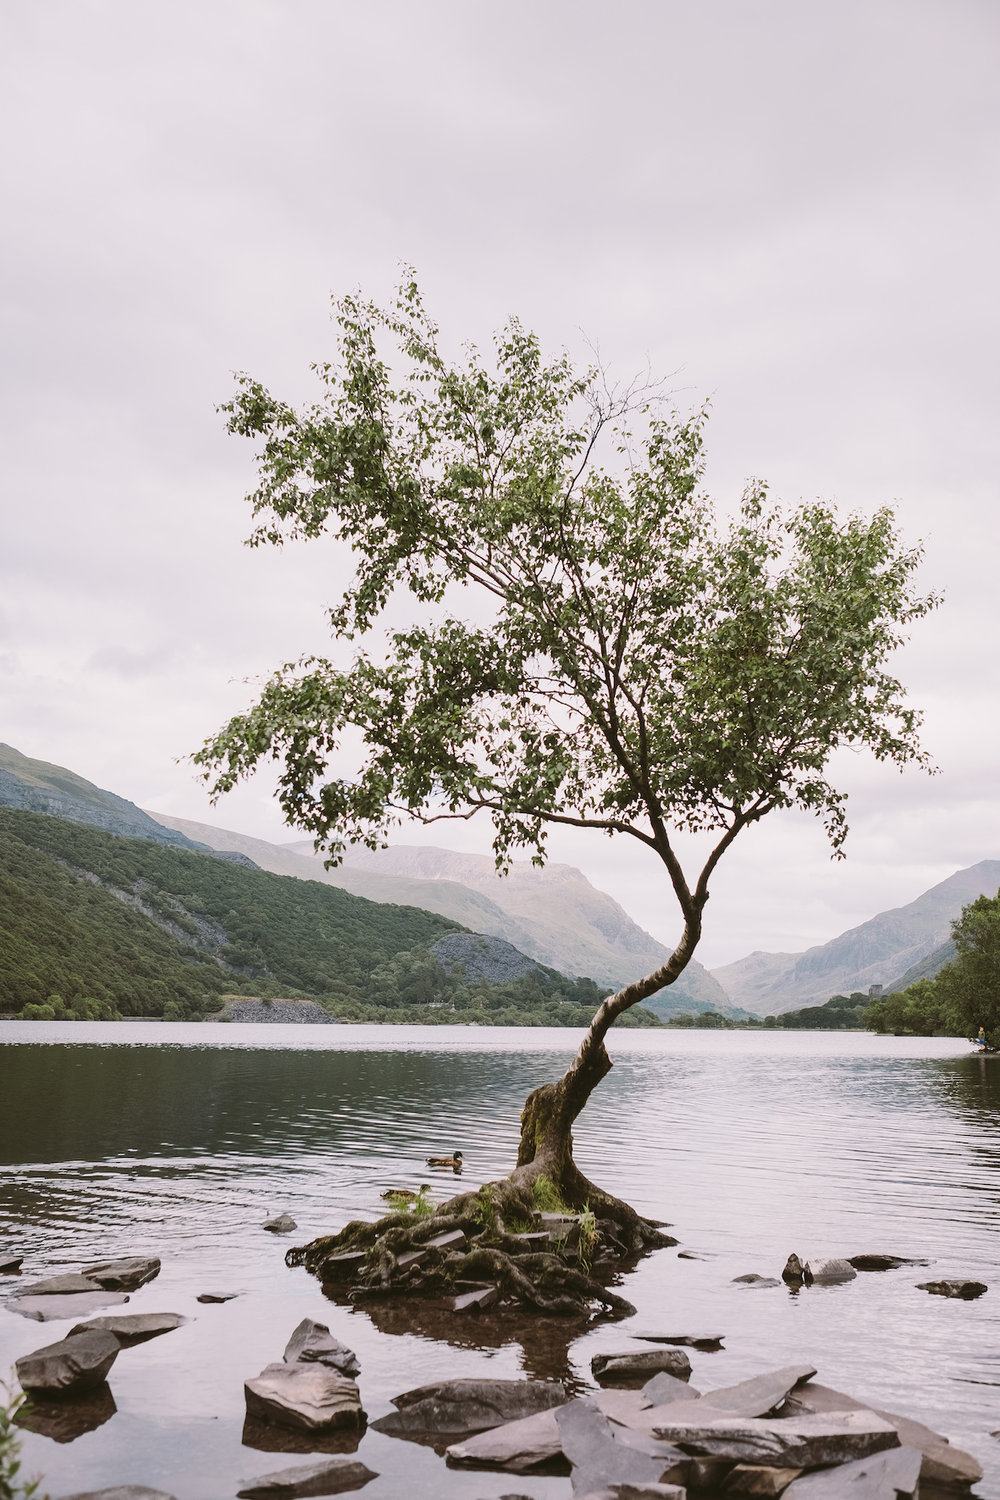 The lone tree at Llyn Padarn.  Fuji X-H1 + 23mm 1.4 Lens